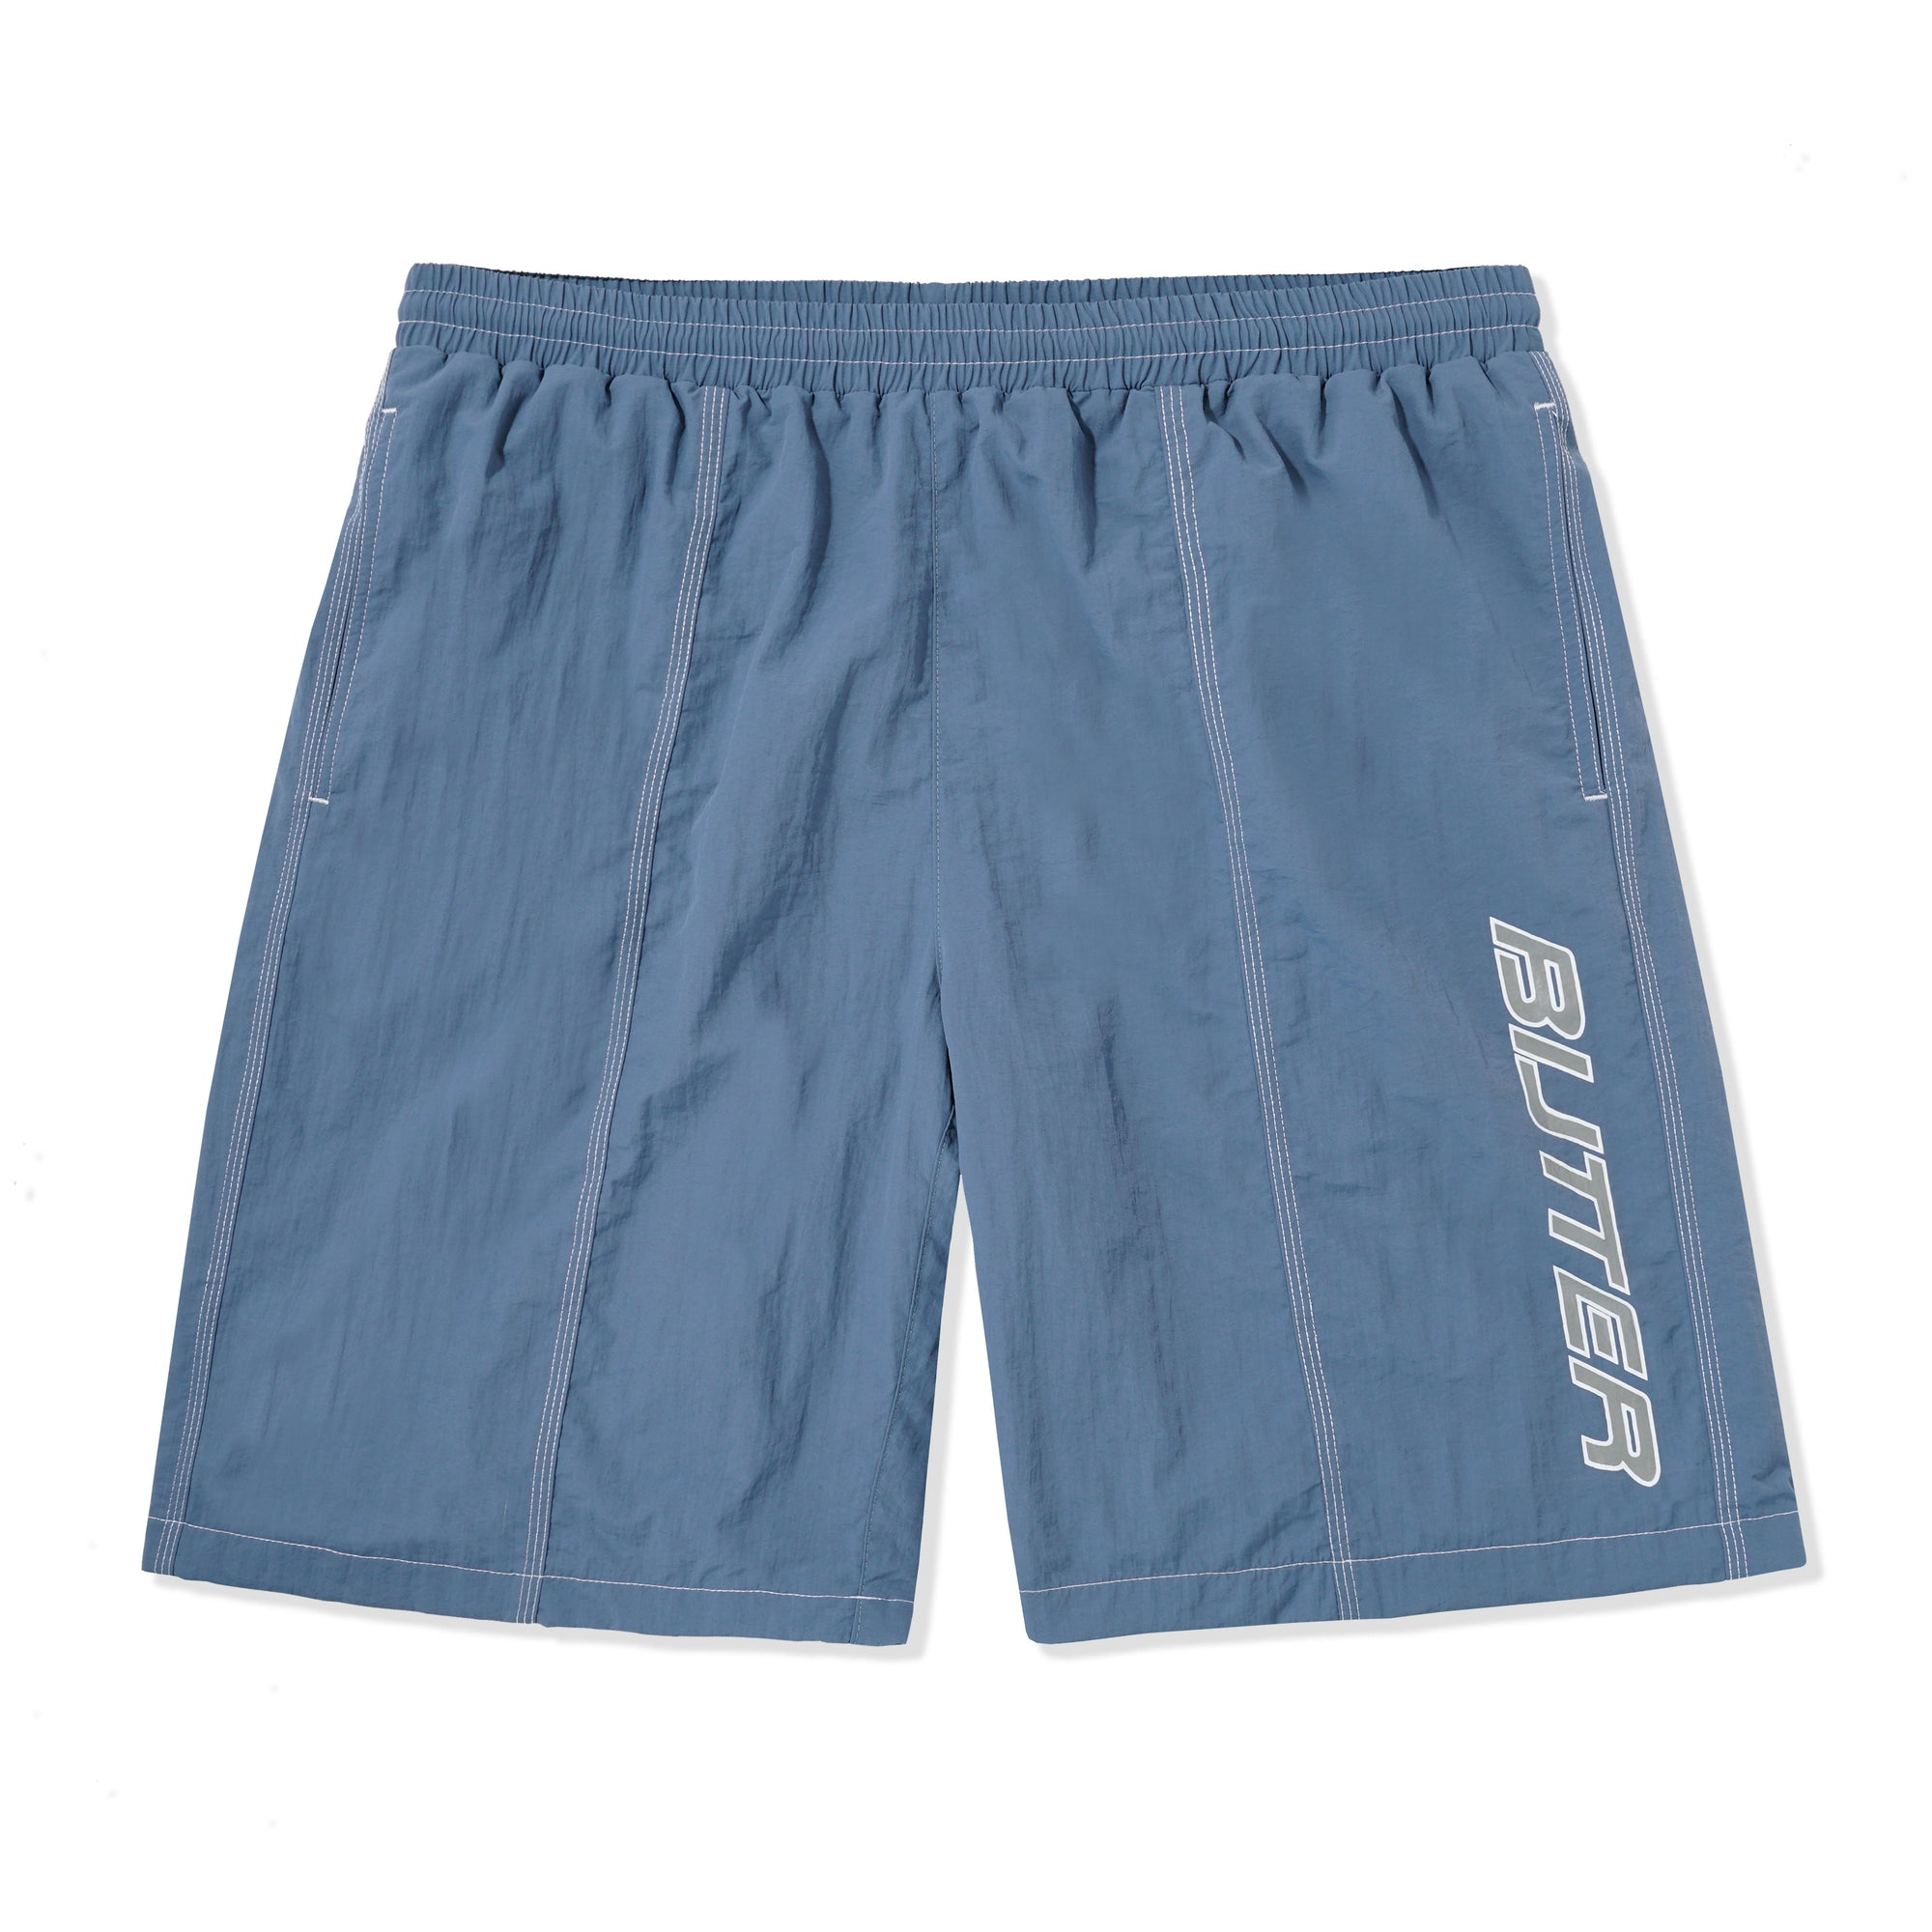 Butter Goods International Shorts Product Photo #1